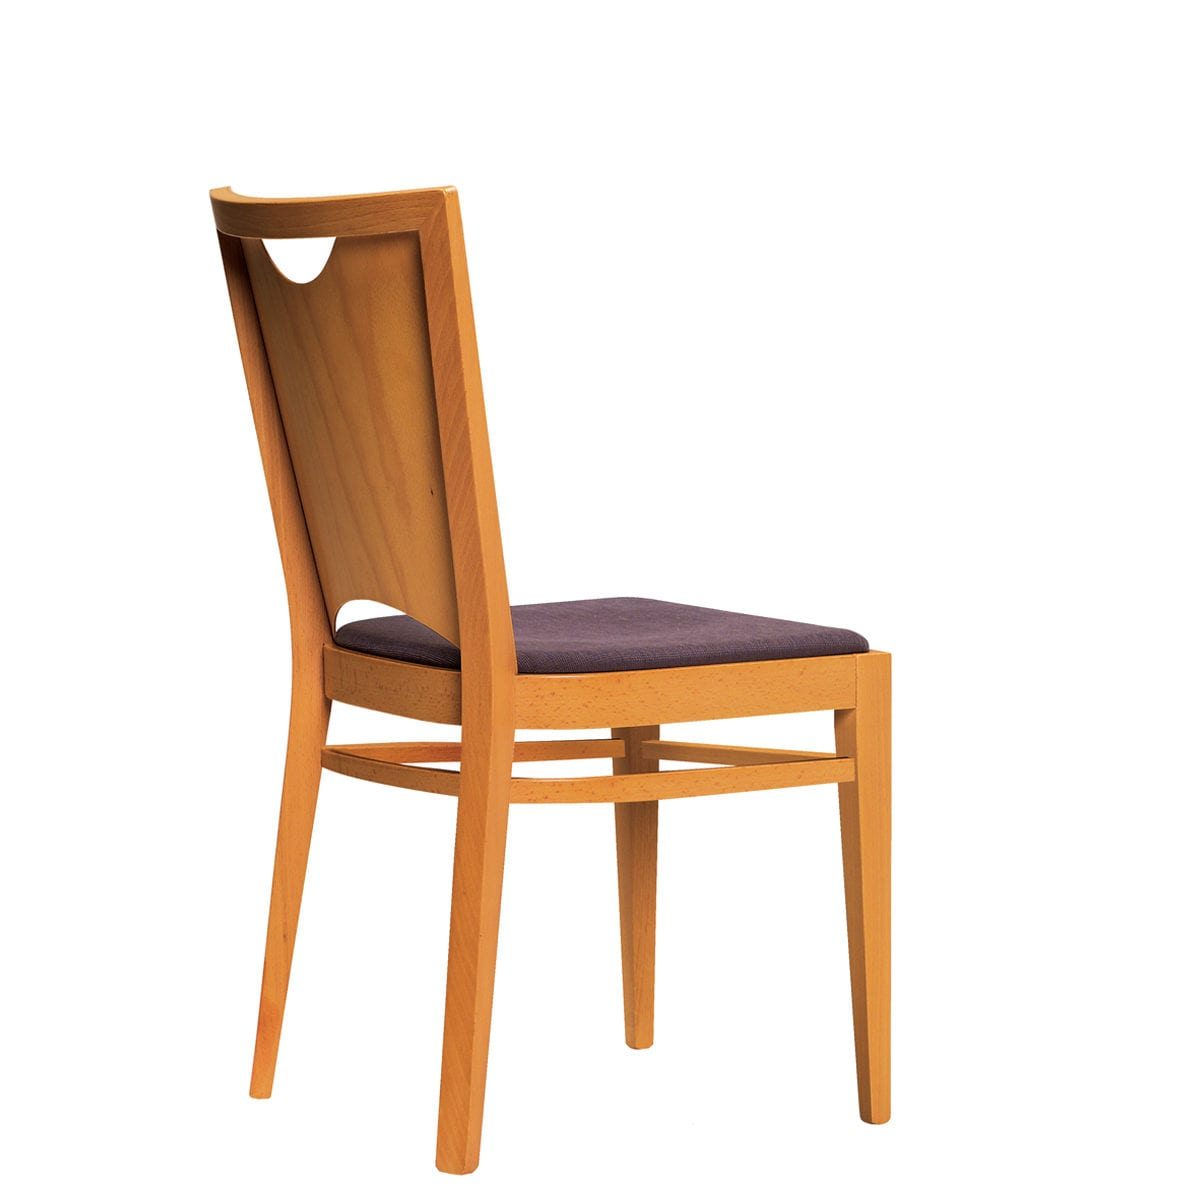 About A Chair 12 Side Chair.100 12 Custom Hospitality Seating Aceray